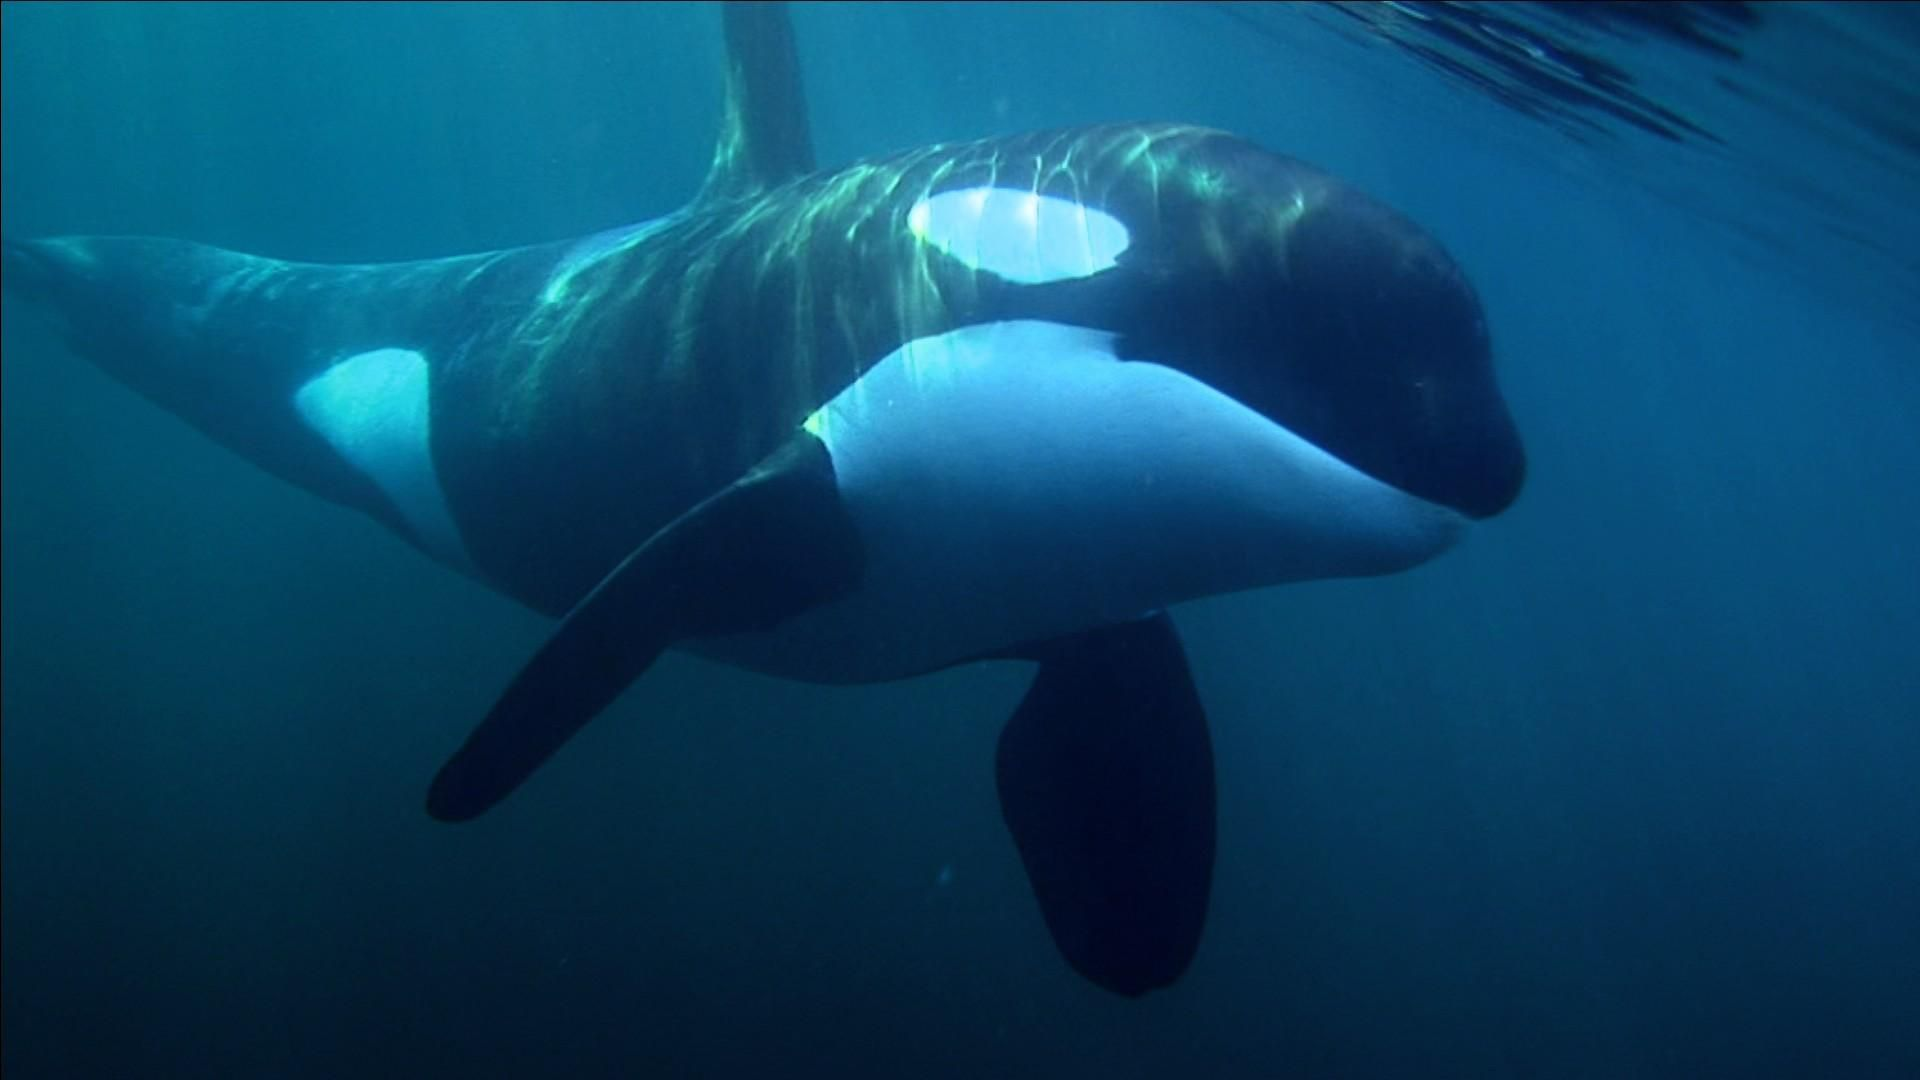 Animal orca killer whale space wallpaper orcas pinterest 1600900 animal orca killer whale space wallpaper orcas pinterest 1600900 pictures of killer whales wallpapers 49 wallpapers adorable wallpapers altavistaventures Gallery